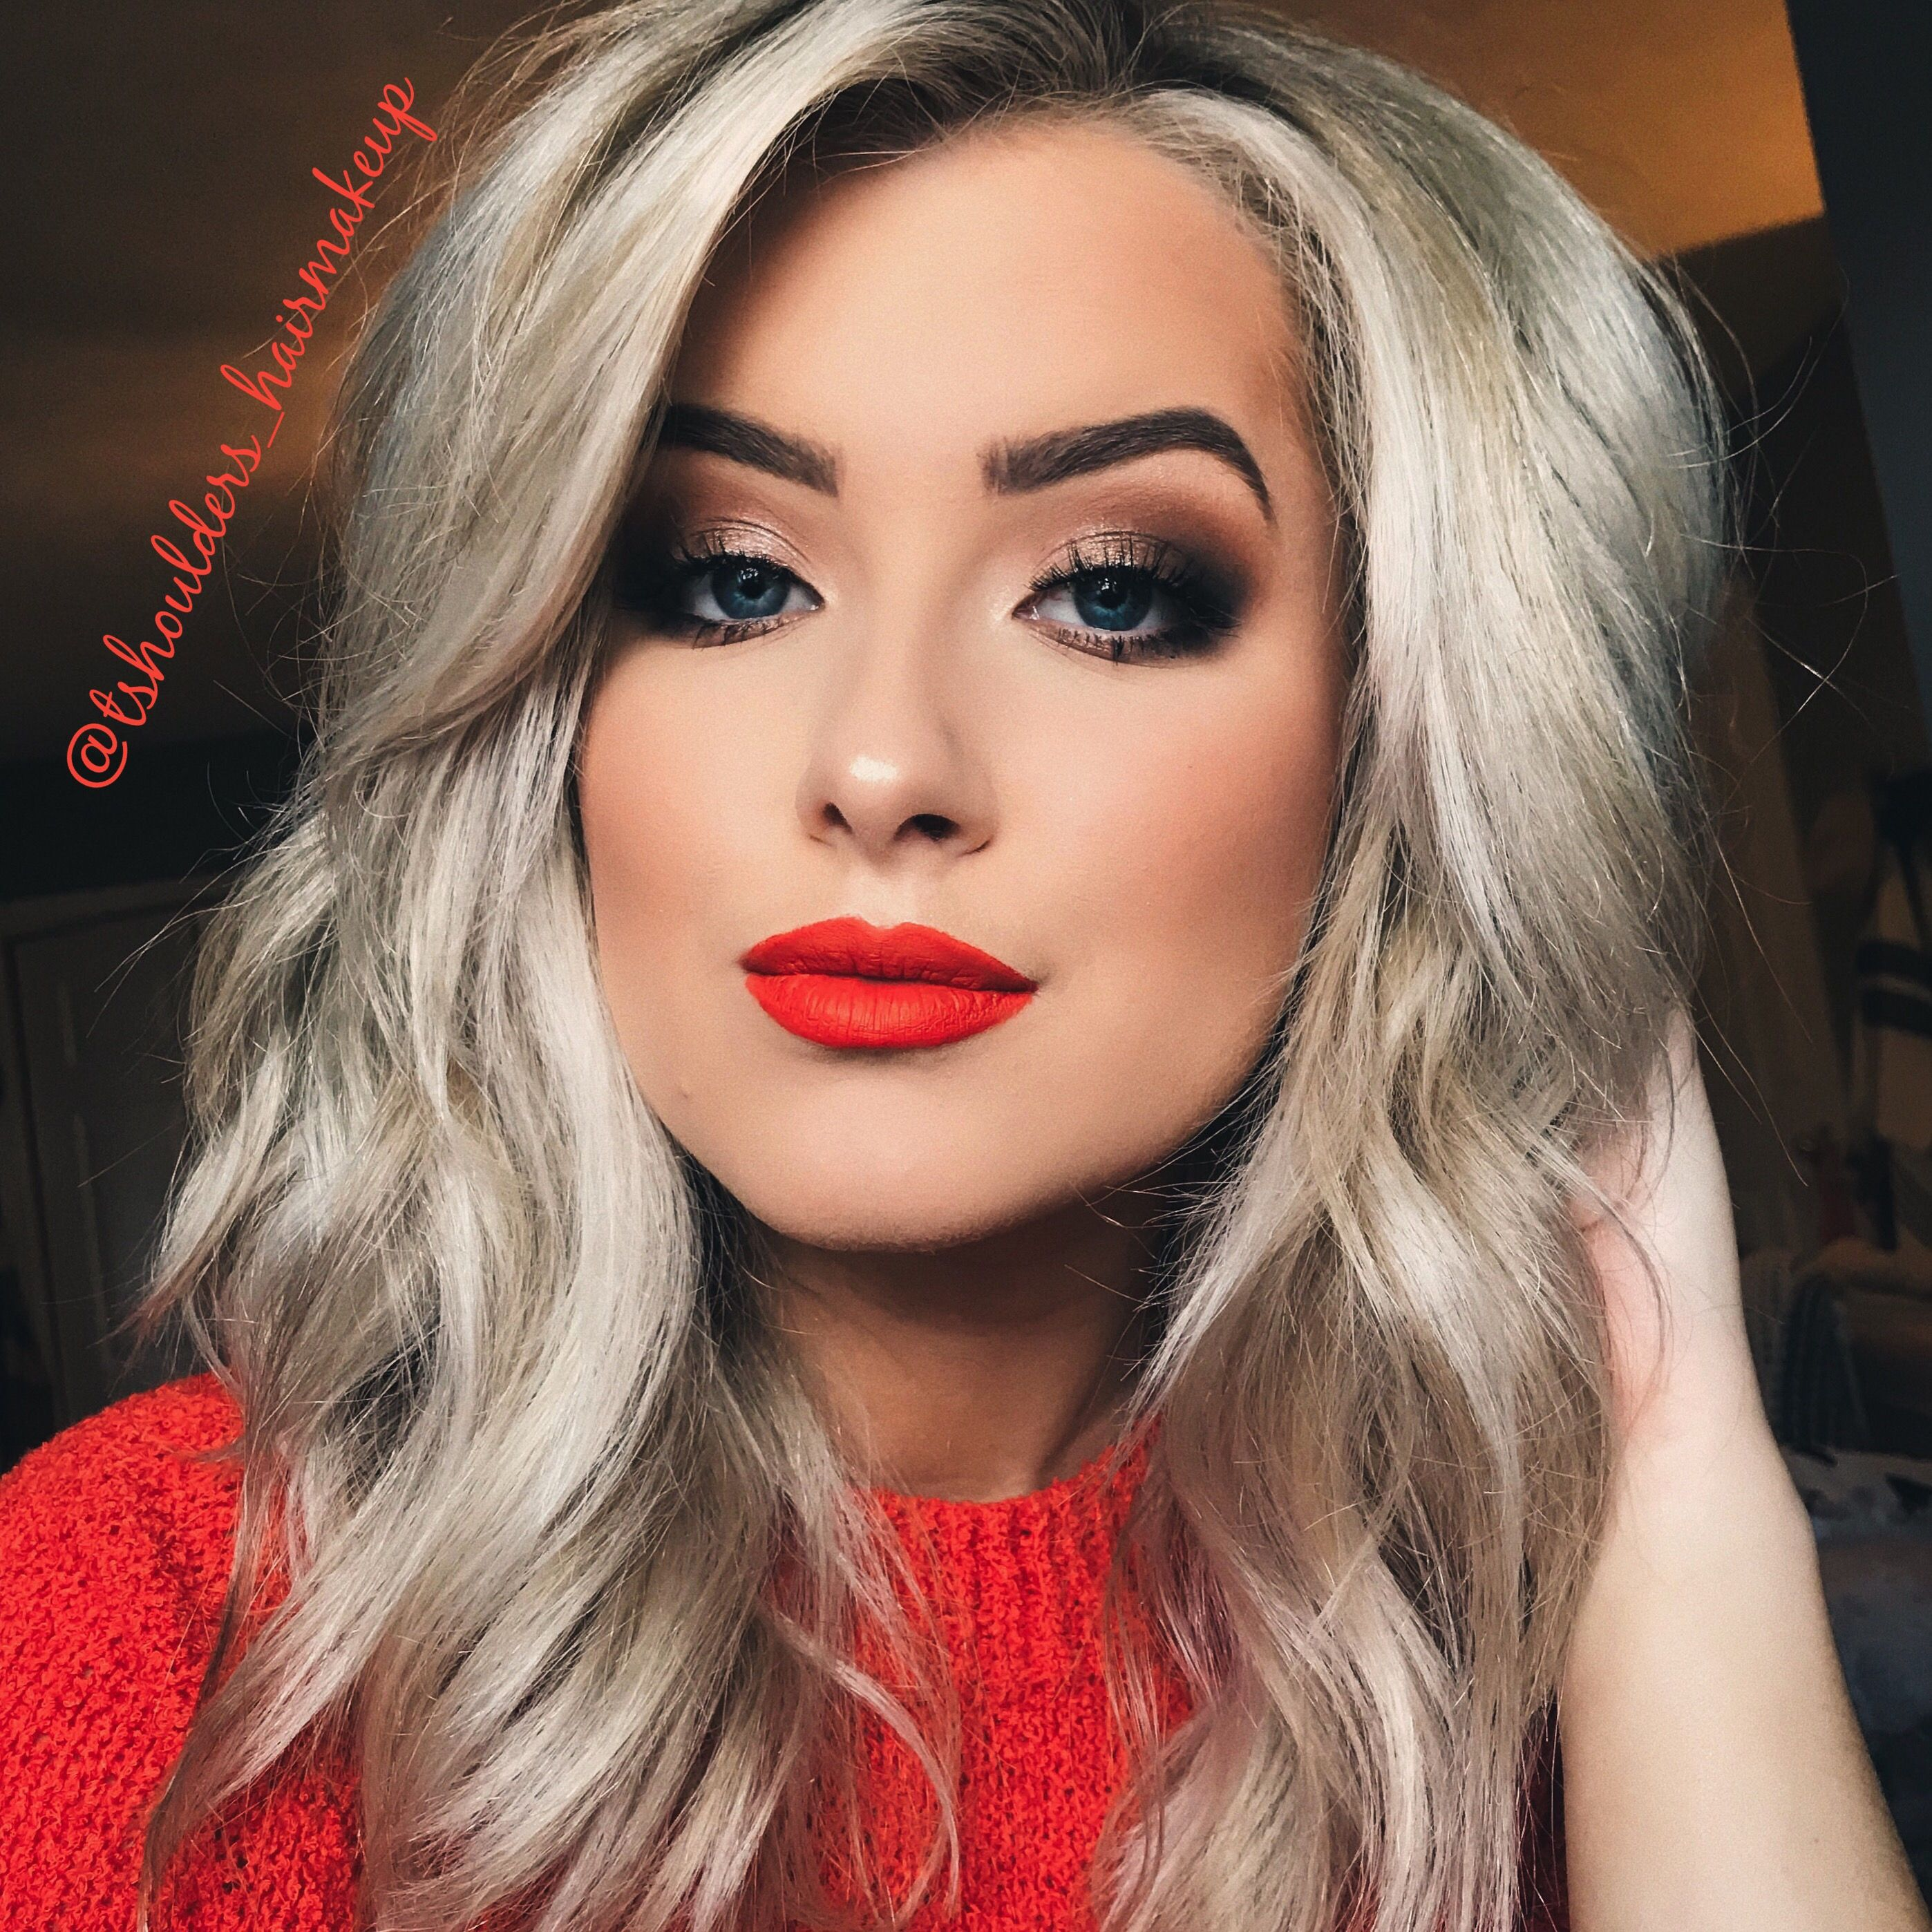 Classic Makeup Red Lip Blonde Hair Red Lipstick Makeup Blonde Blonde Hair Red Lips Red Hair Makeup